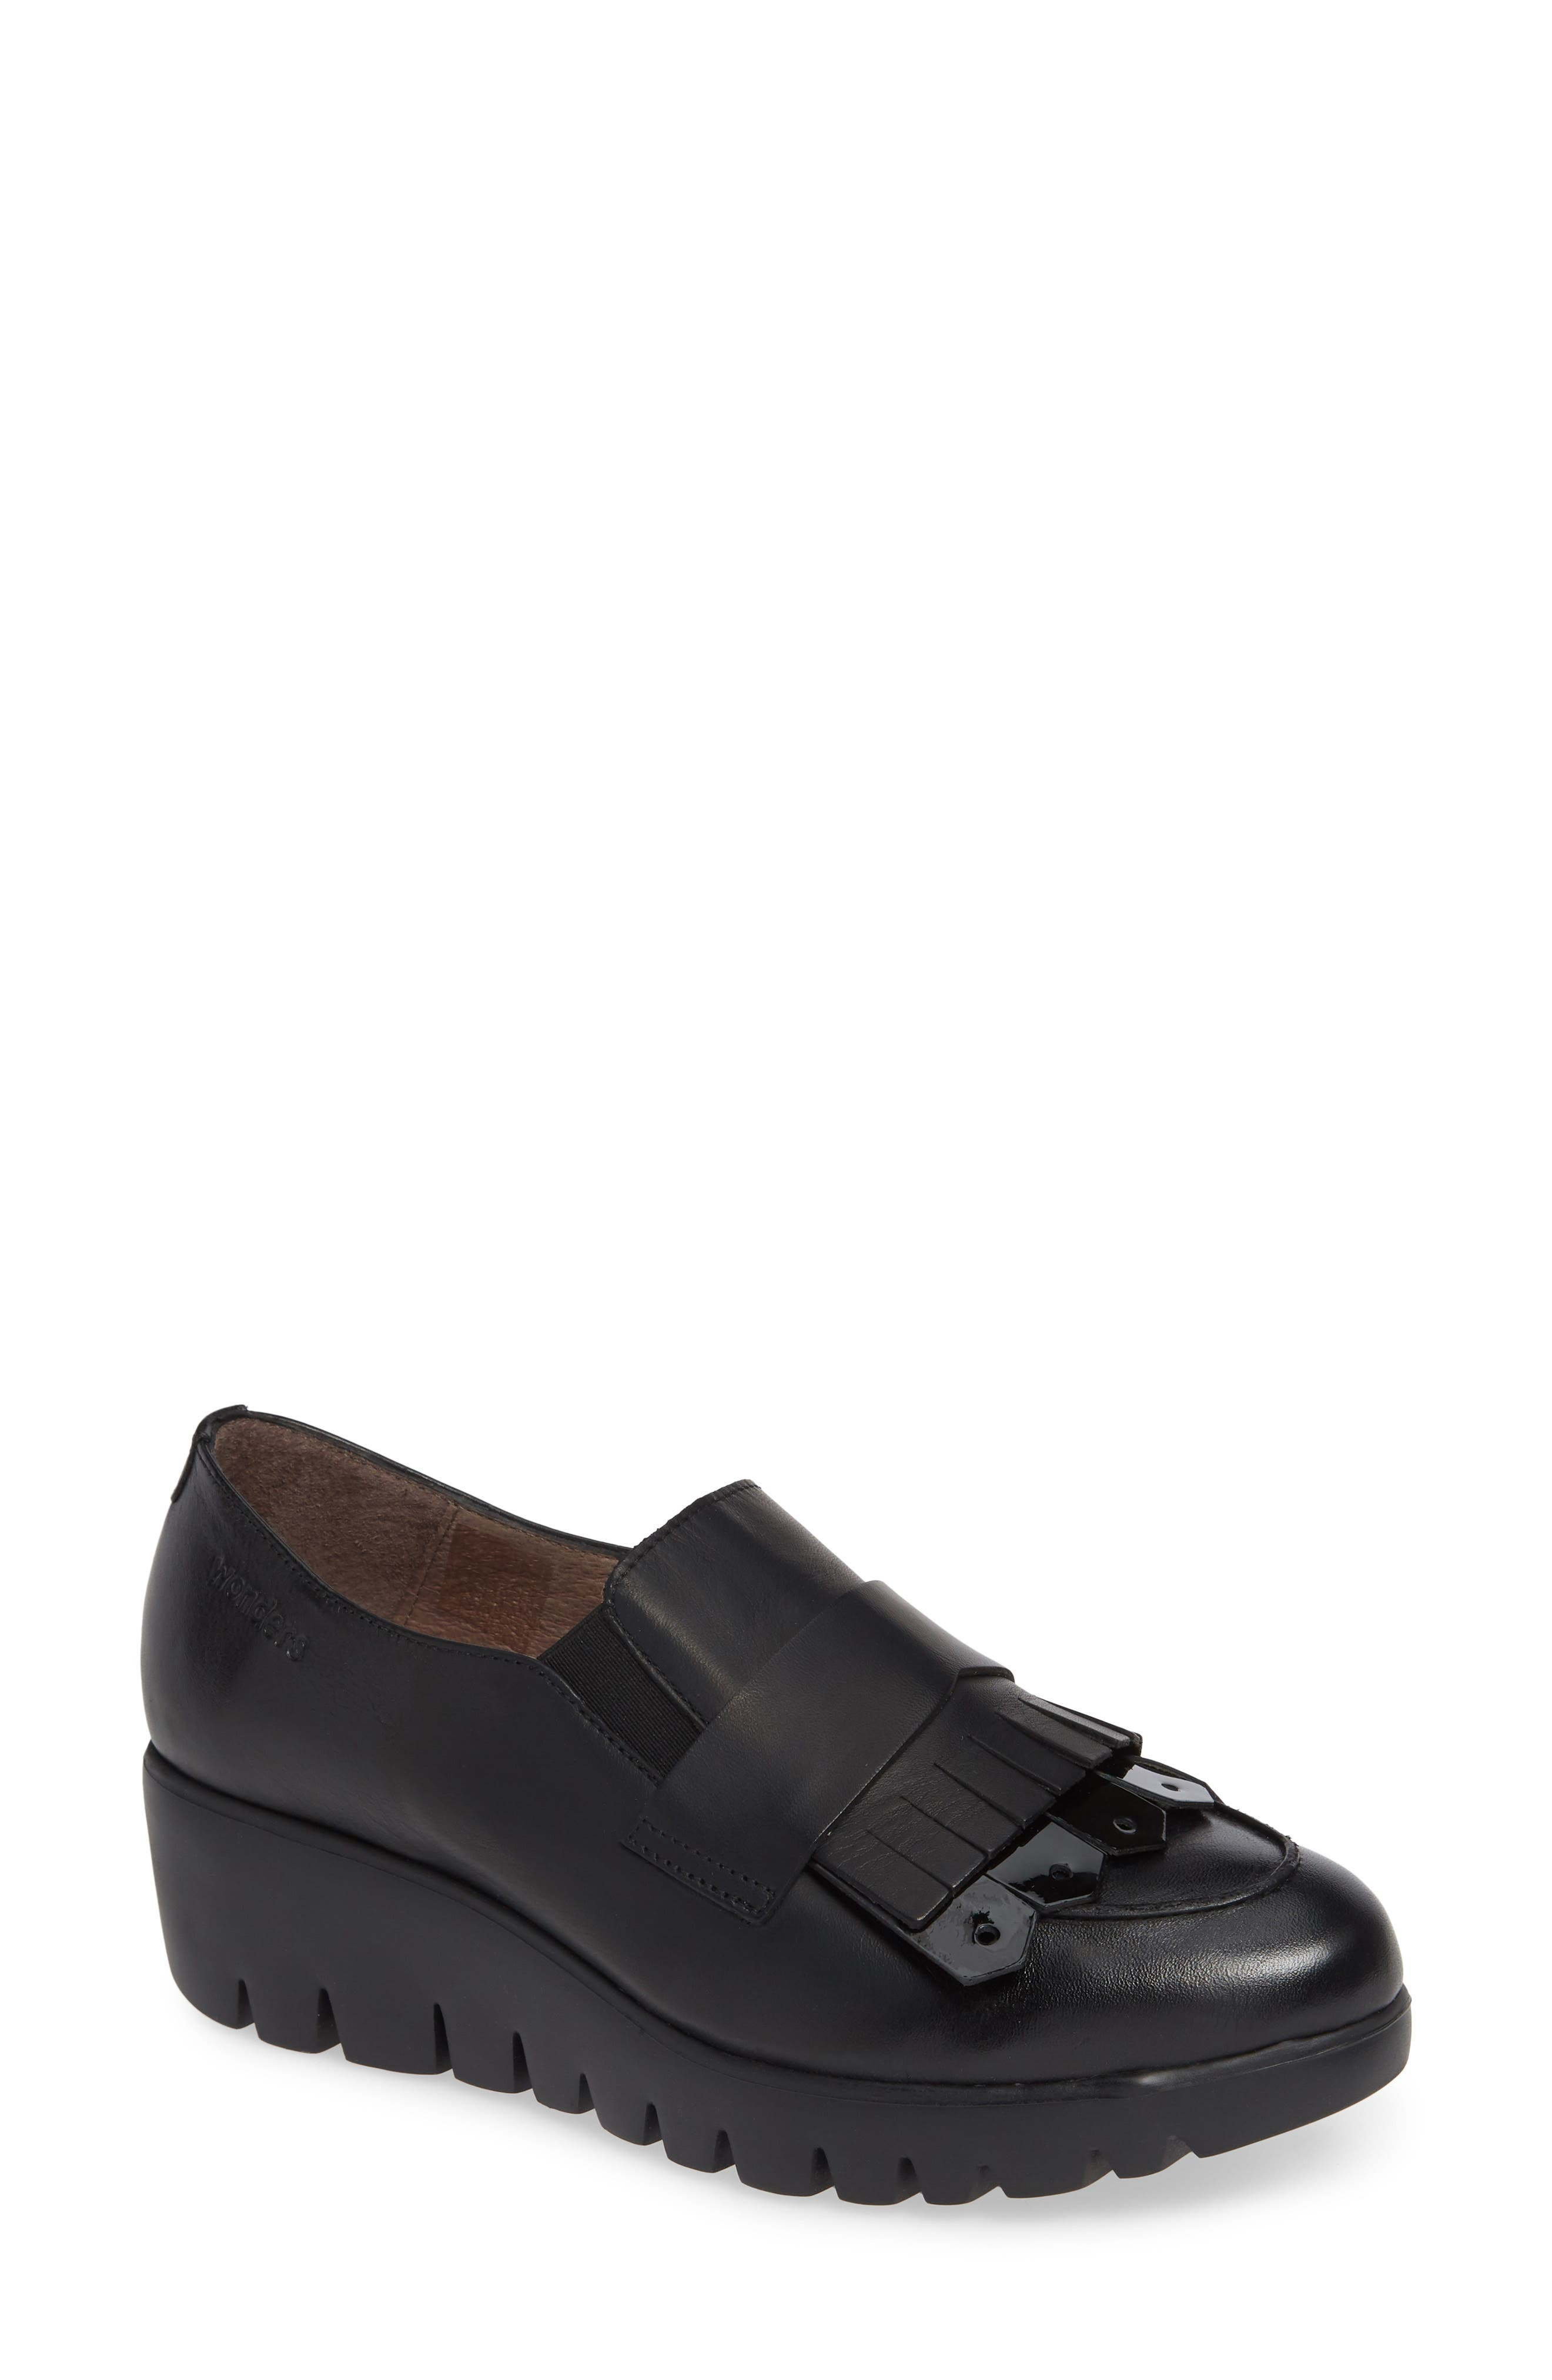 Kiltie Wedge Loafer,                             Main thumbnail 1, color,                             BLACK PATENT AND LEATHER